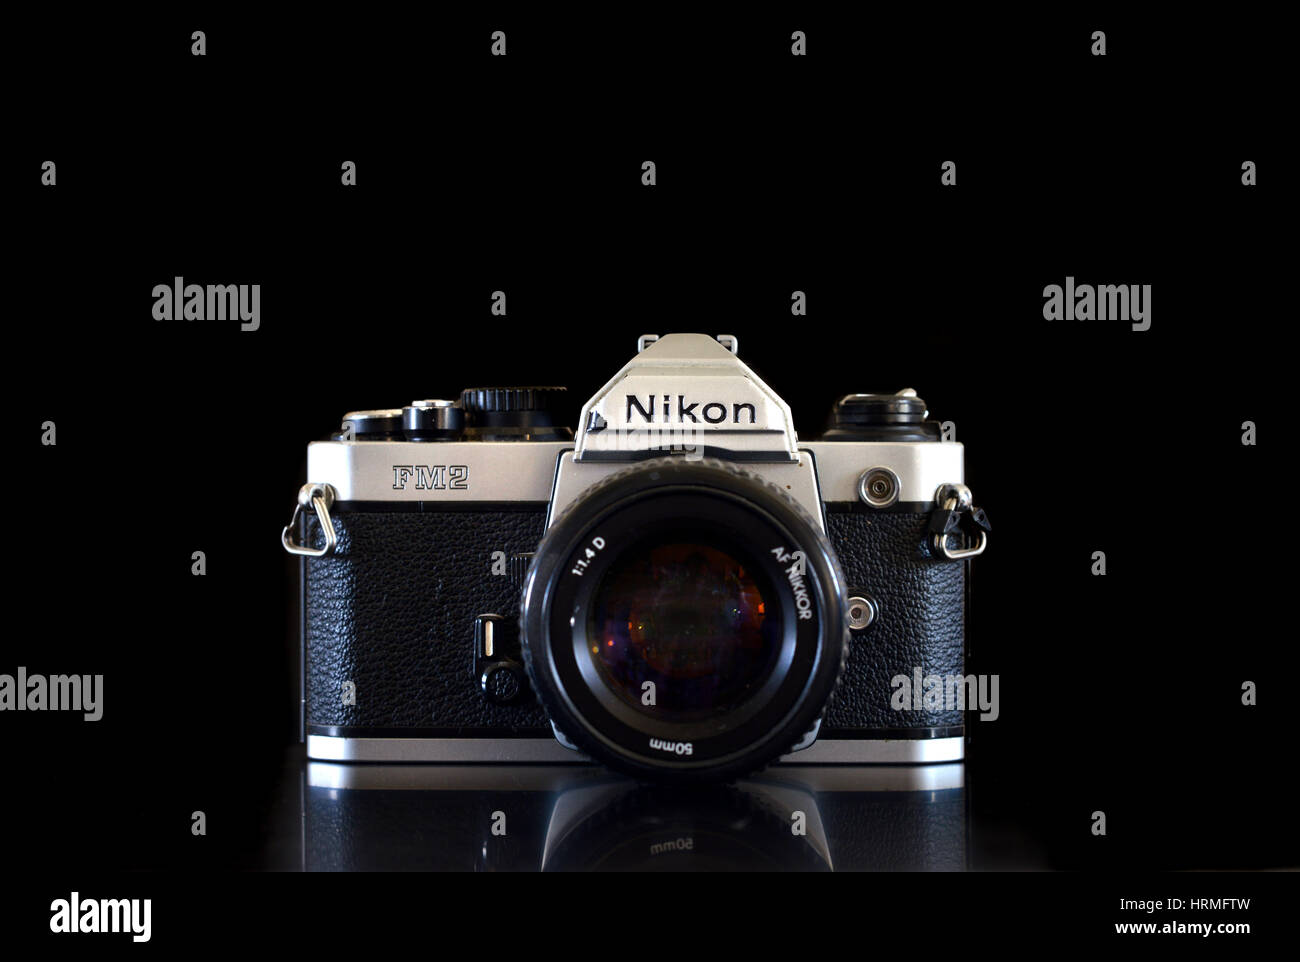 Vintage Nikon film camera FM2 - Stock Image